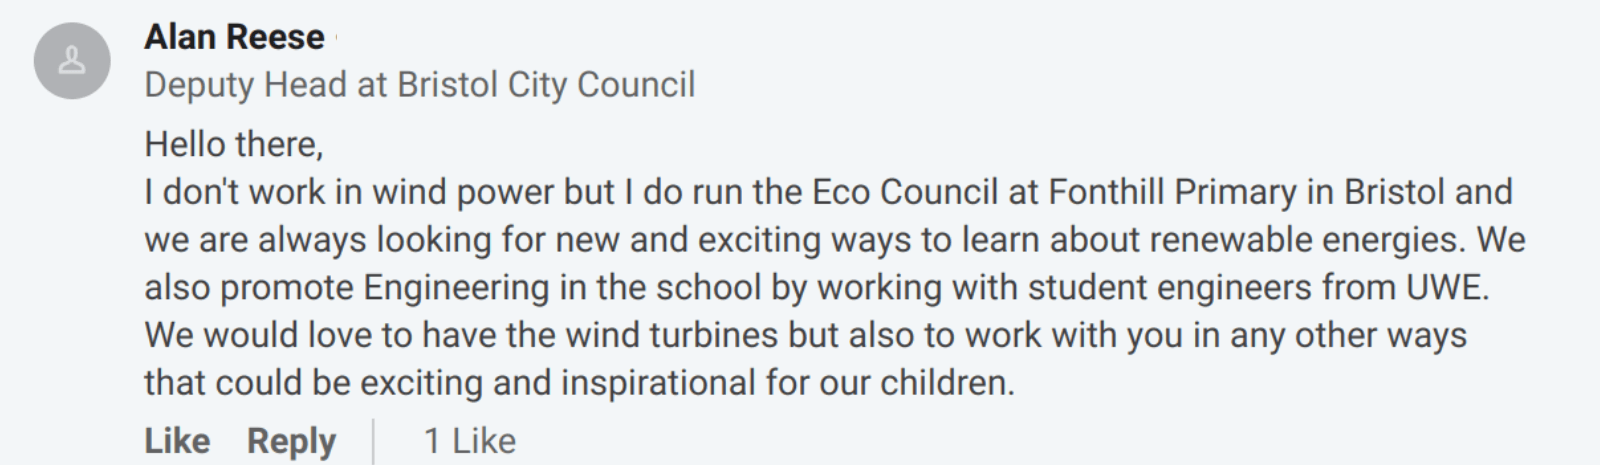 Alan Reese from Fonthill Primary School Eco Council